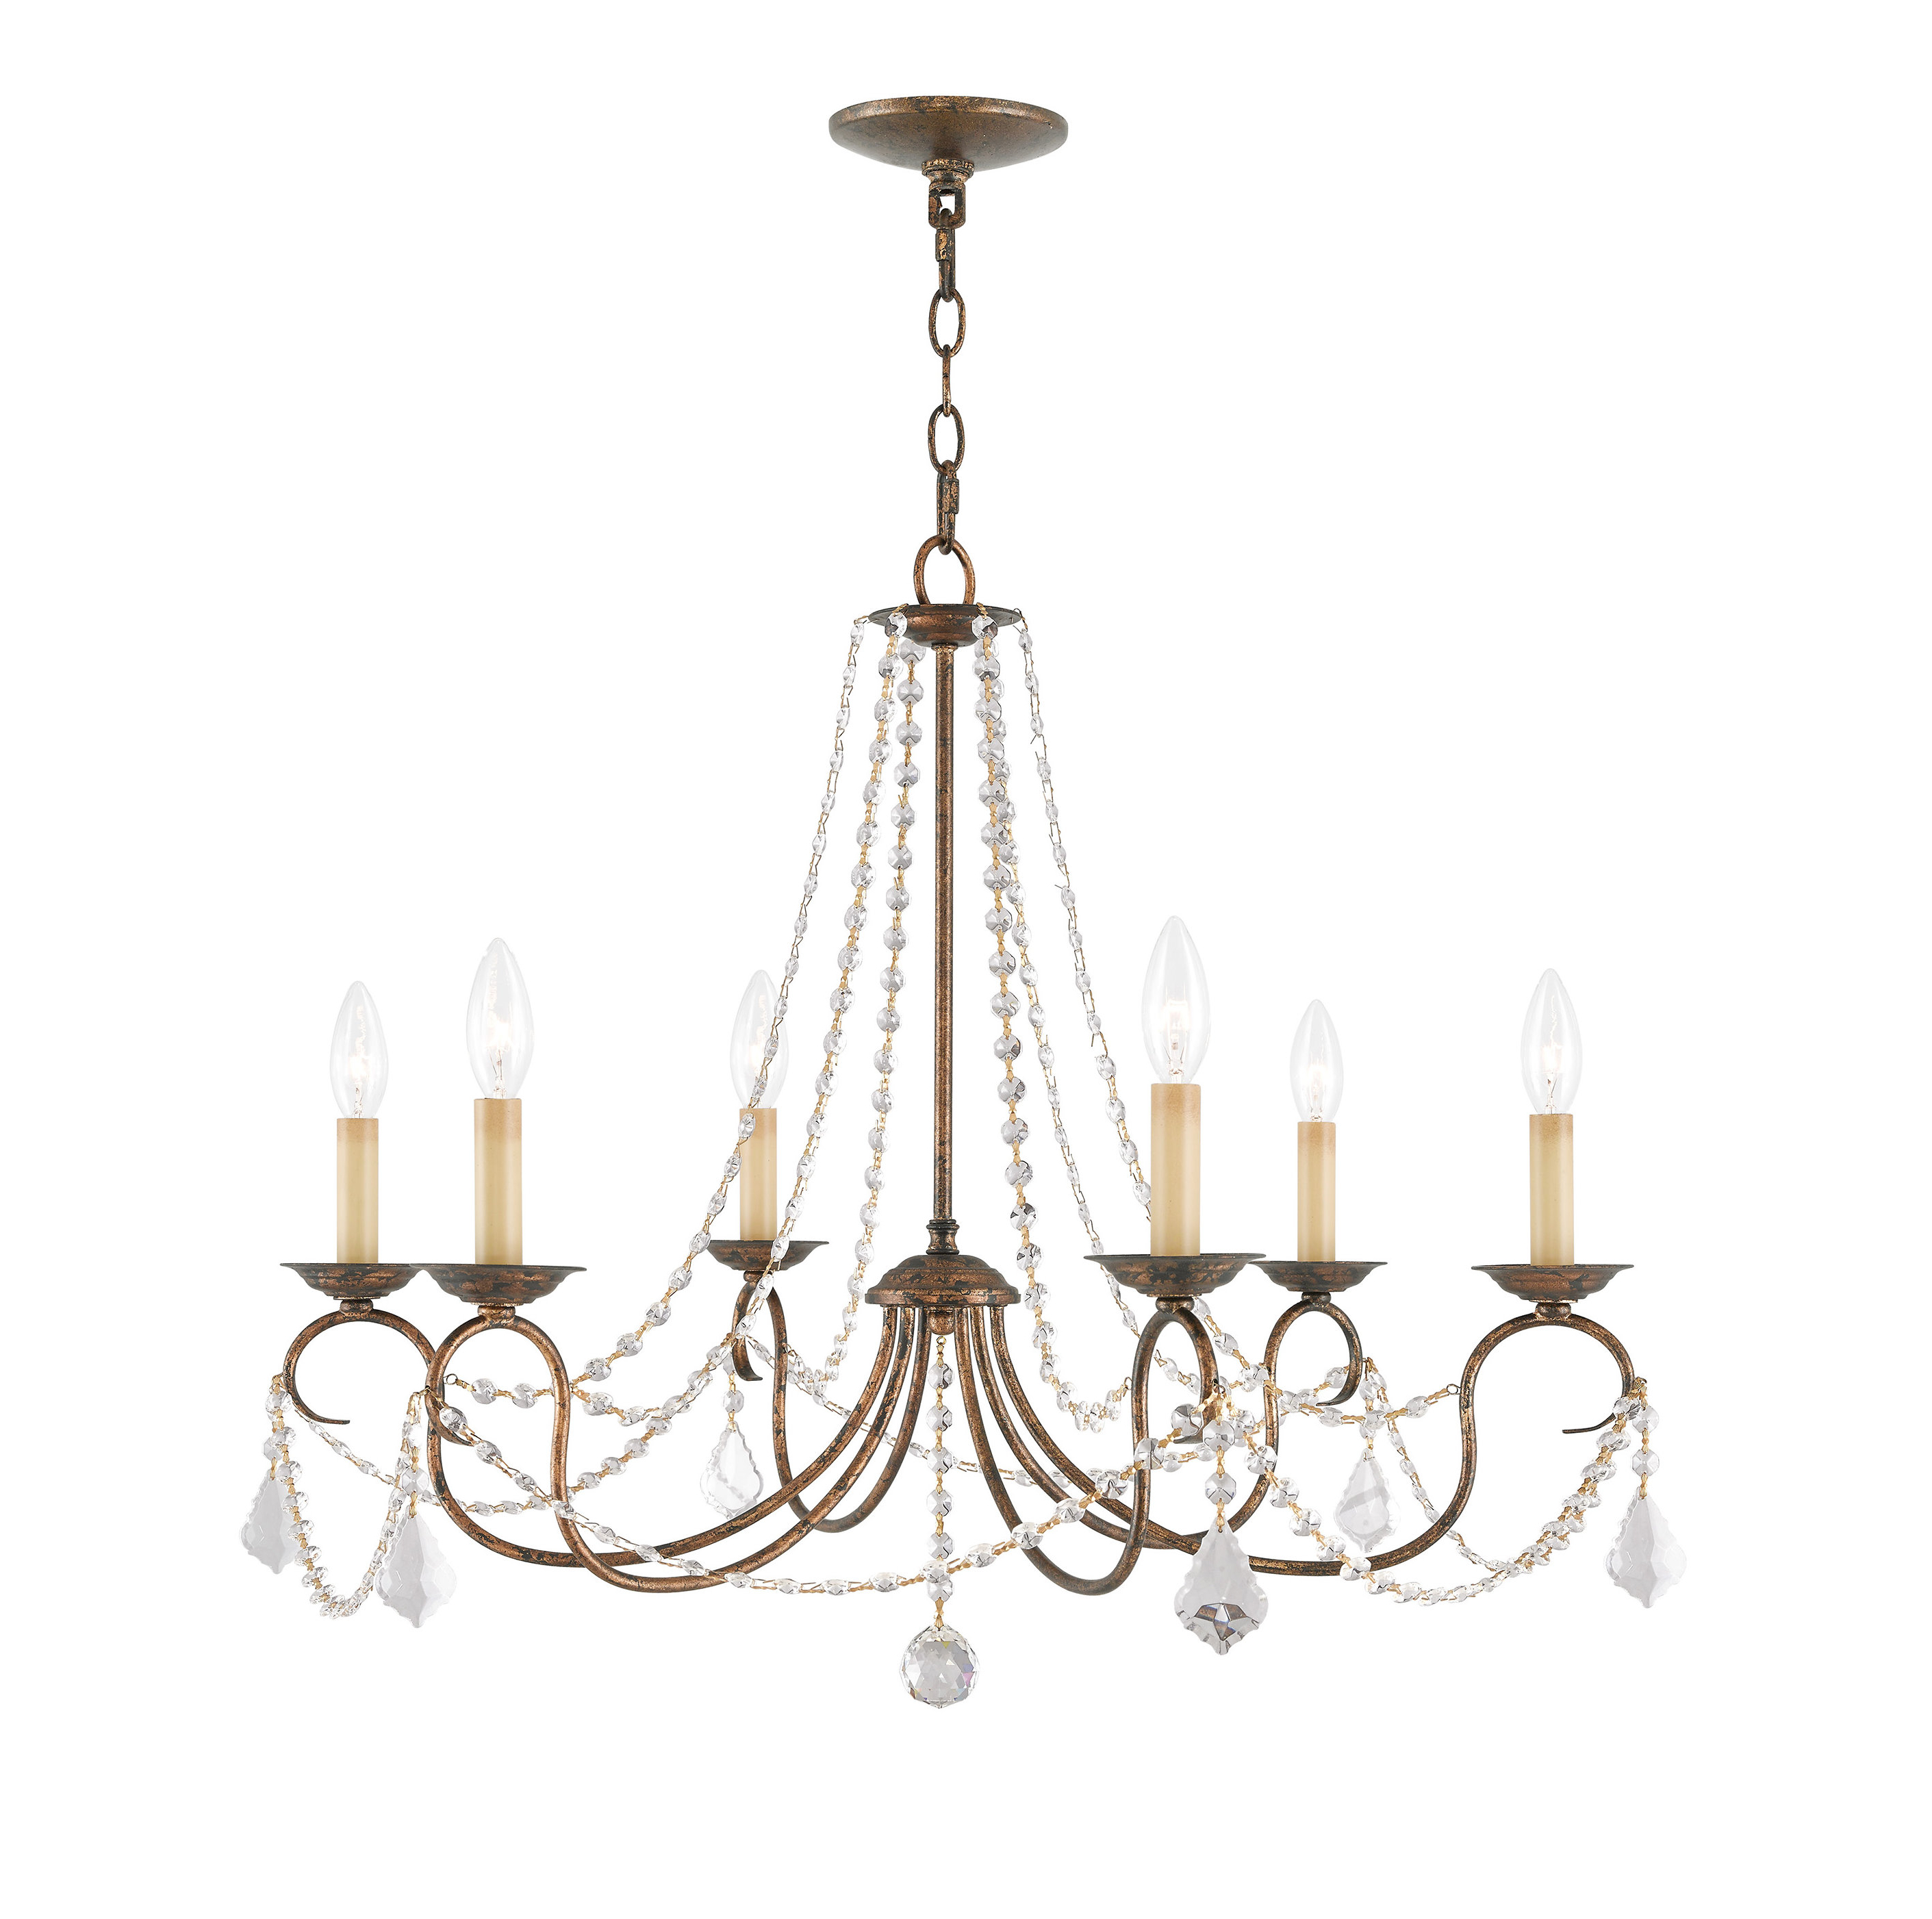 Famous Devana 6 Light Candle Style Chandelier With Diaz 6 Light Candle Style Chandeliers (View 12 of 25)